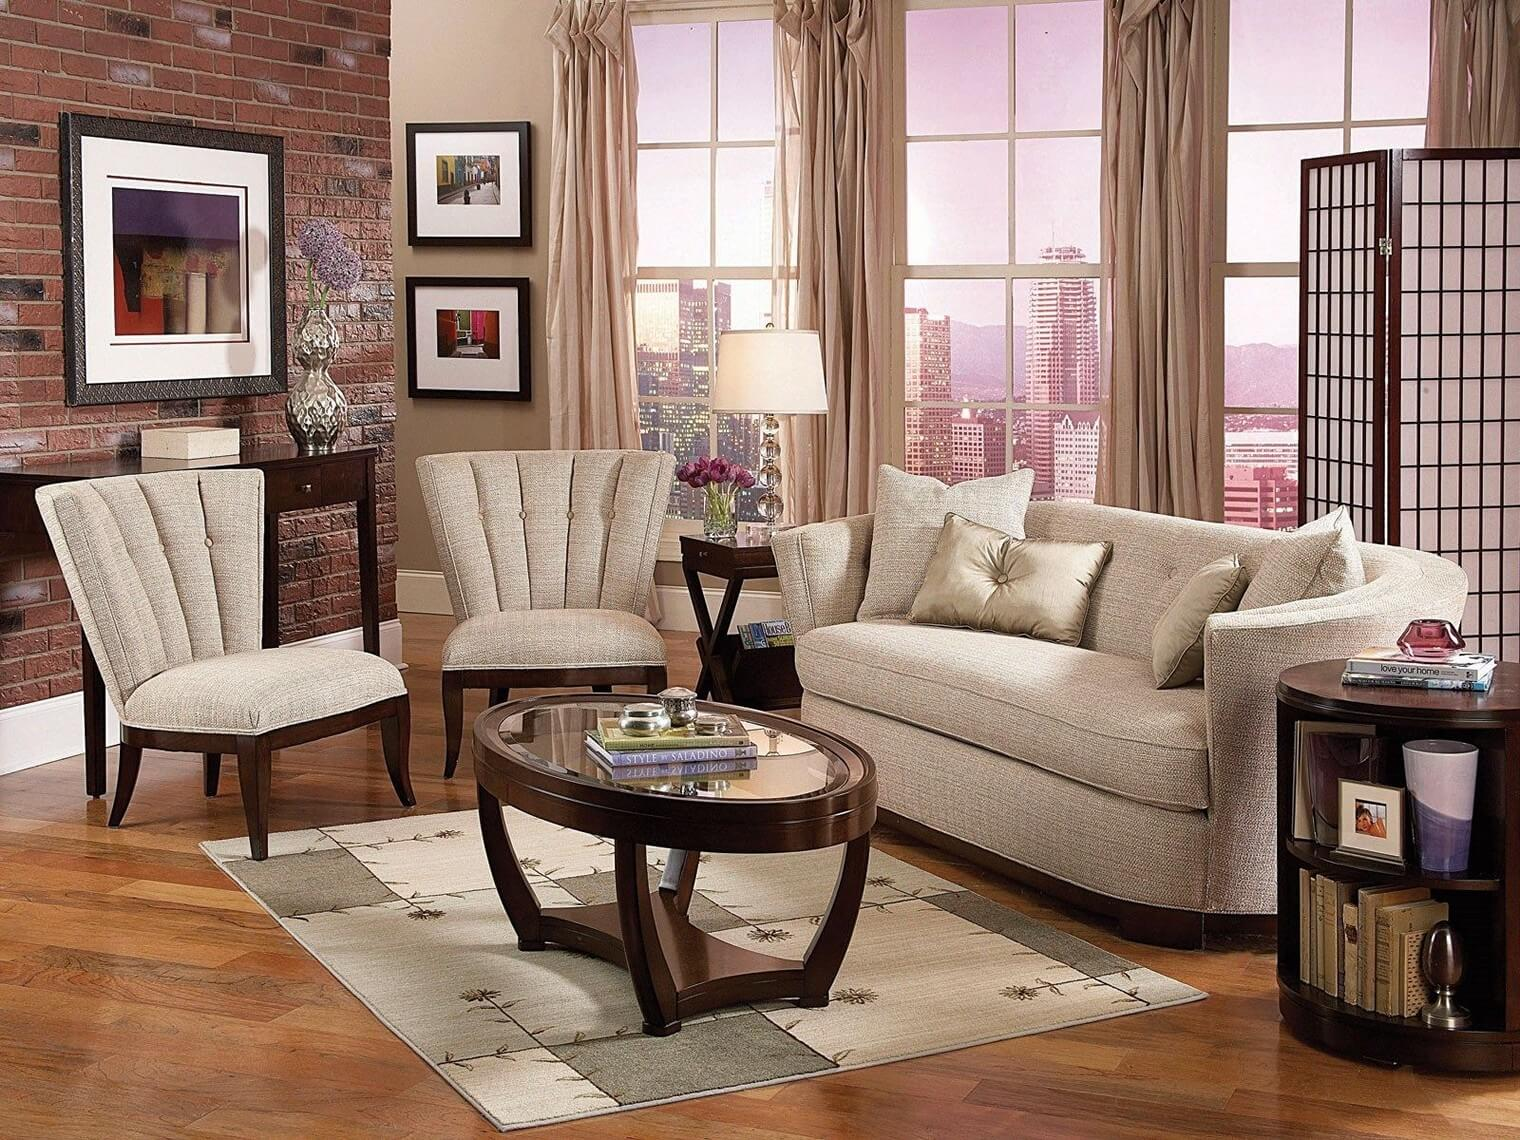 Sitting Room Chairs 124 43 Great Living Room Ideas And Designs Photo Gallery